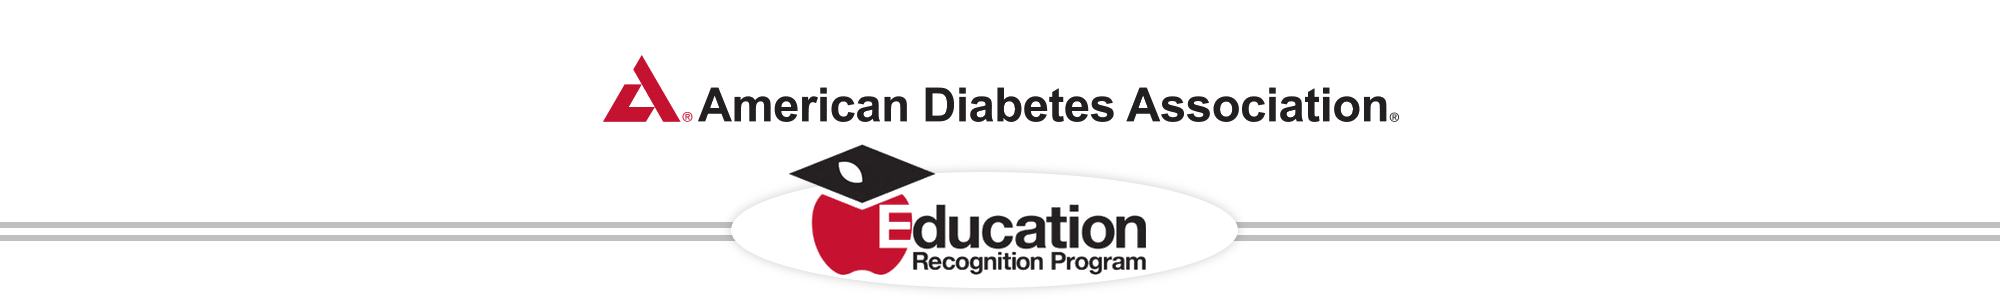 American Diabetes Association Education Recognition Program Header